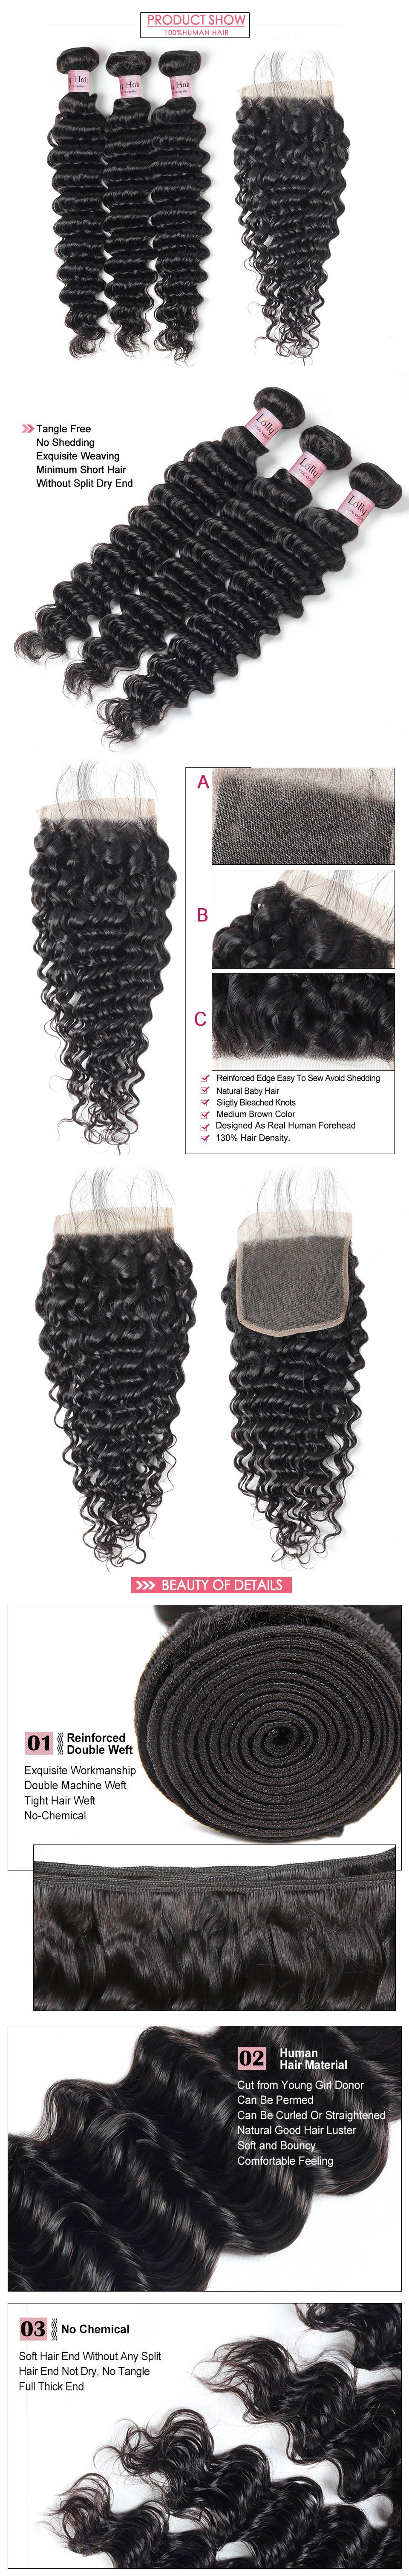 Deep Wave Human Hair 3 Bundles with Lace closure